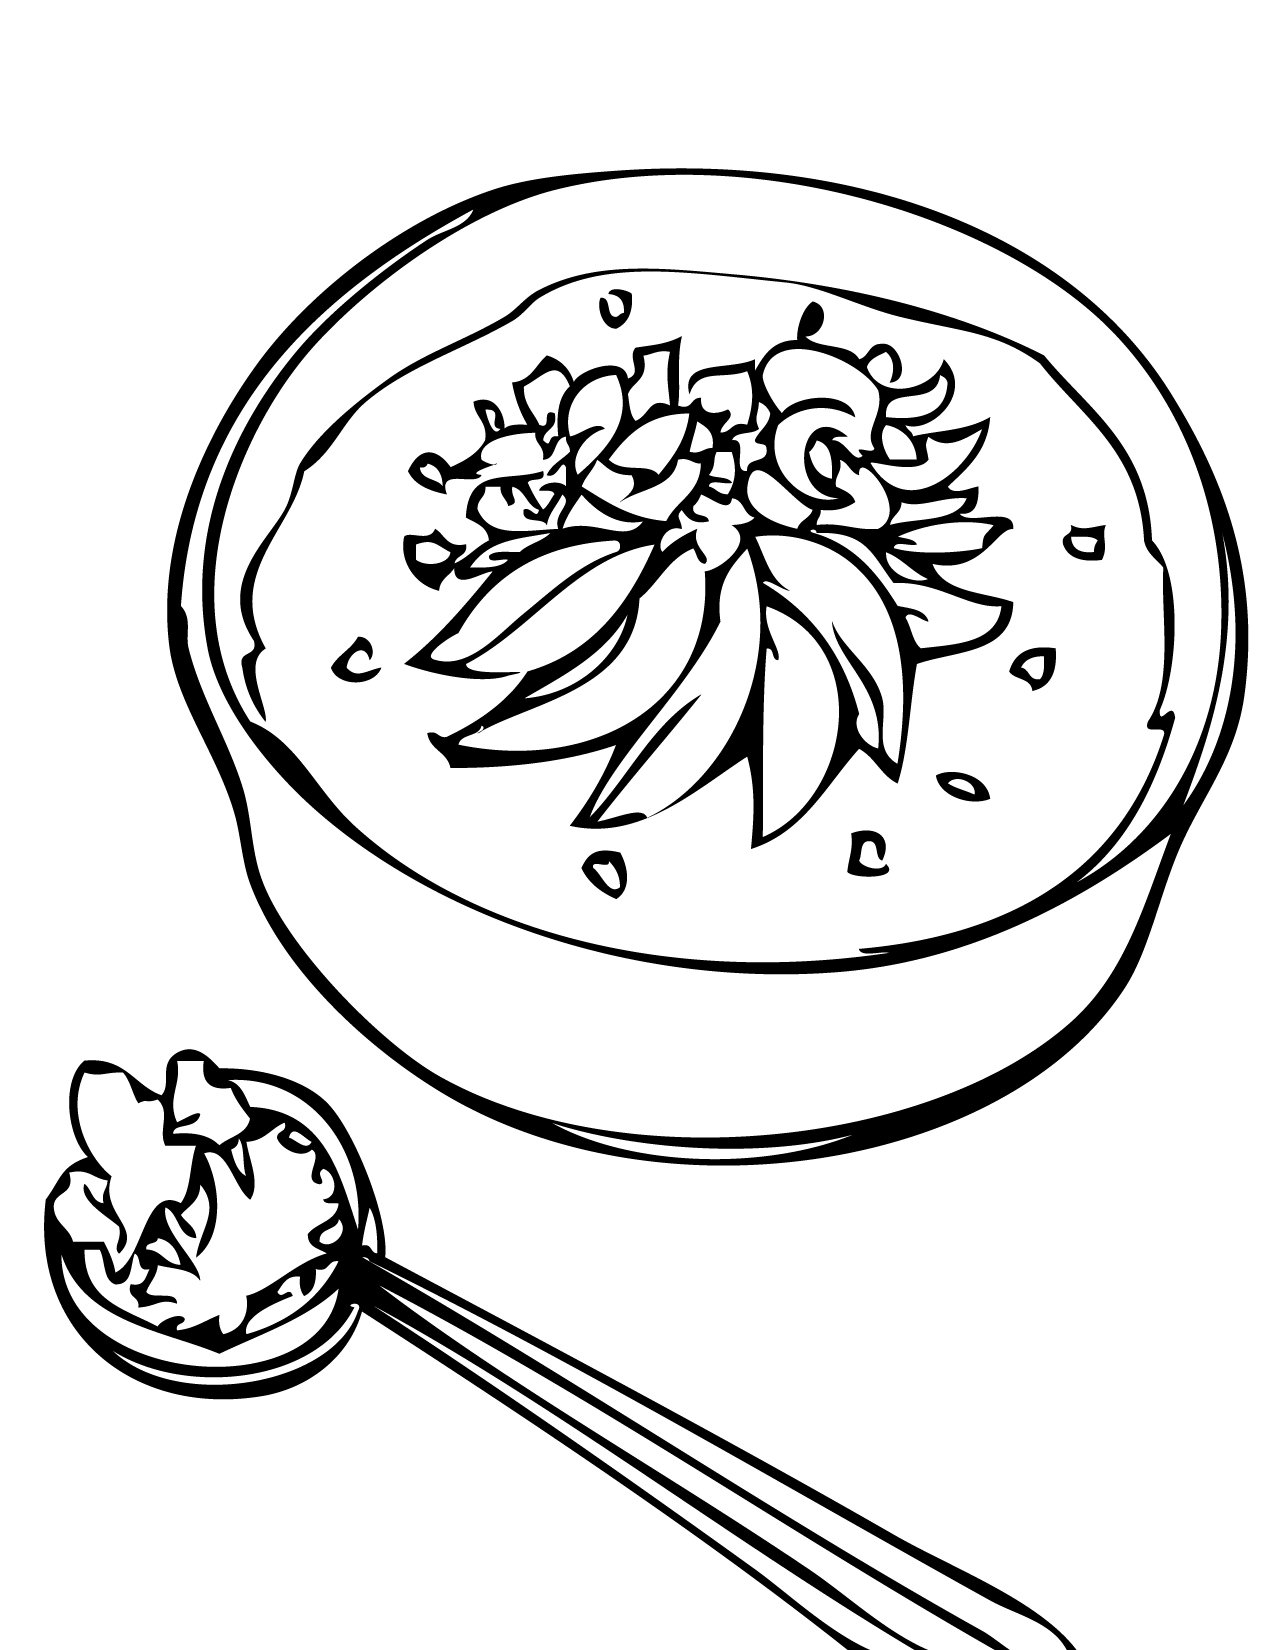 Congee (Rice porridge)